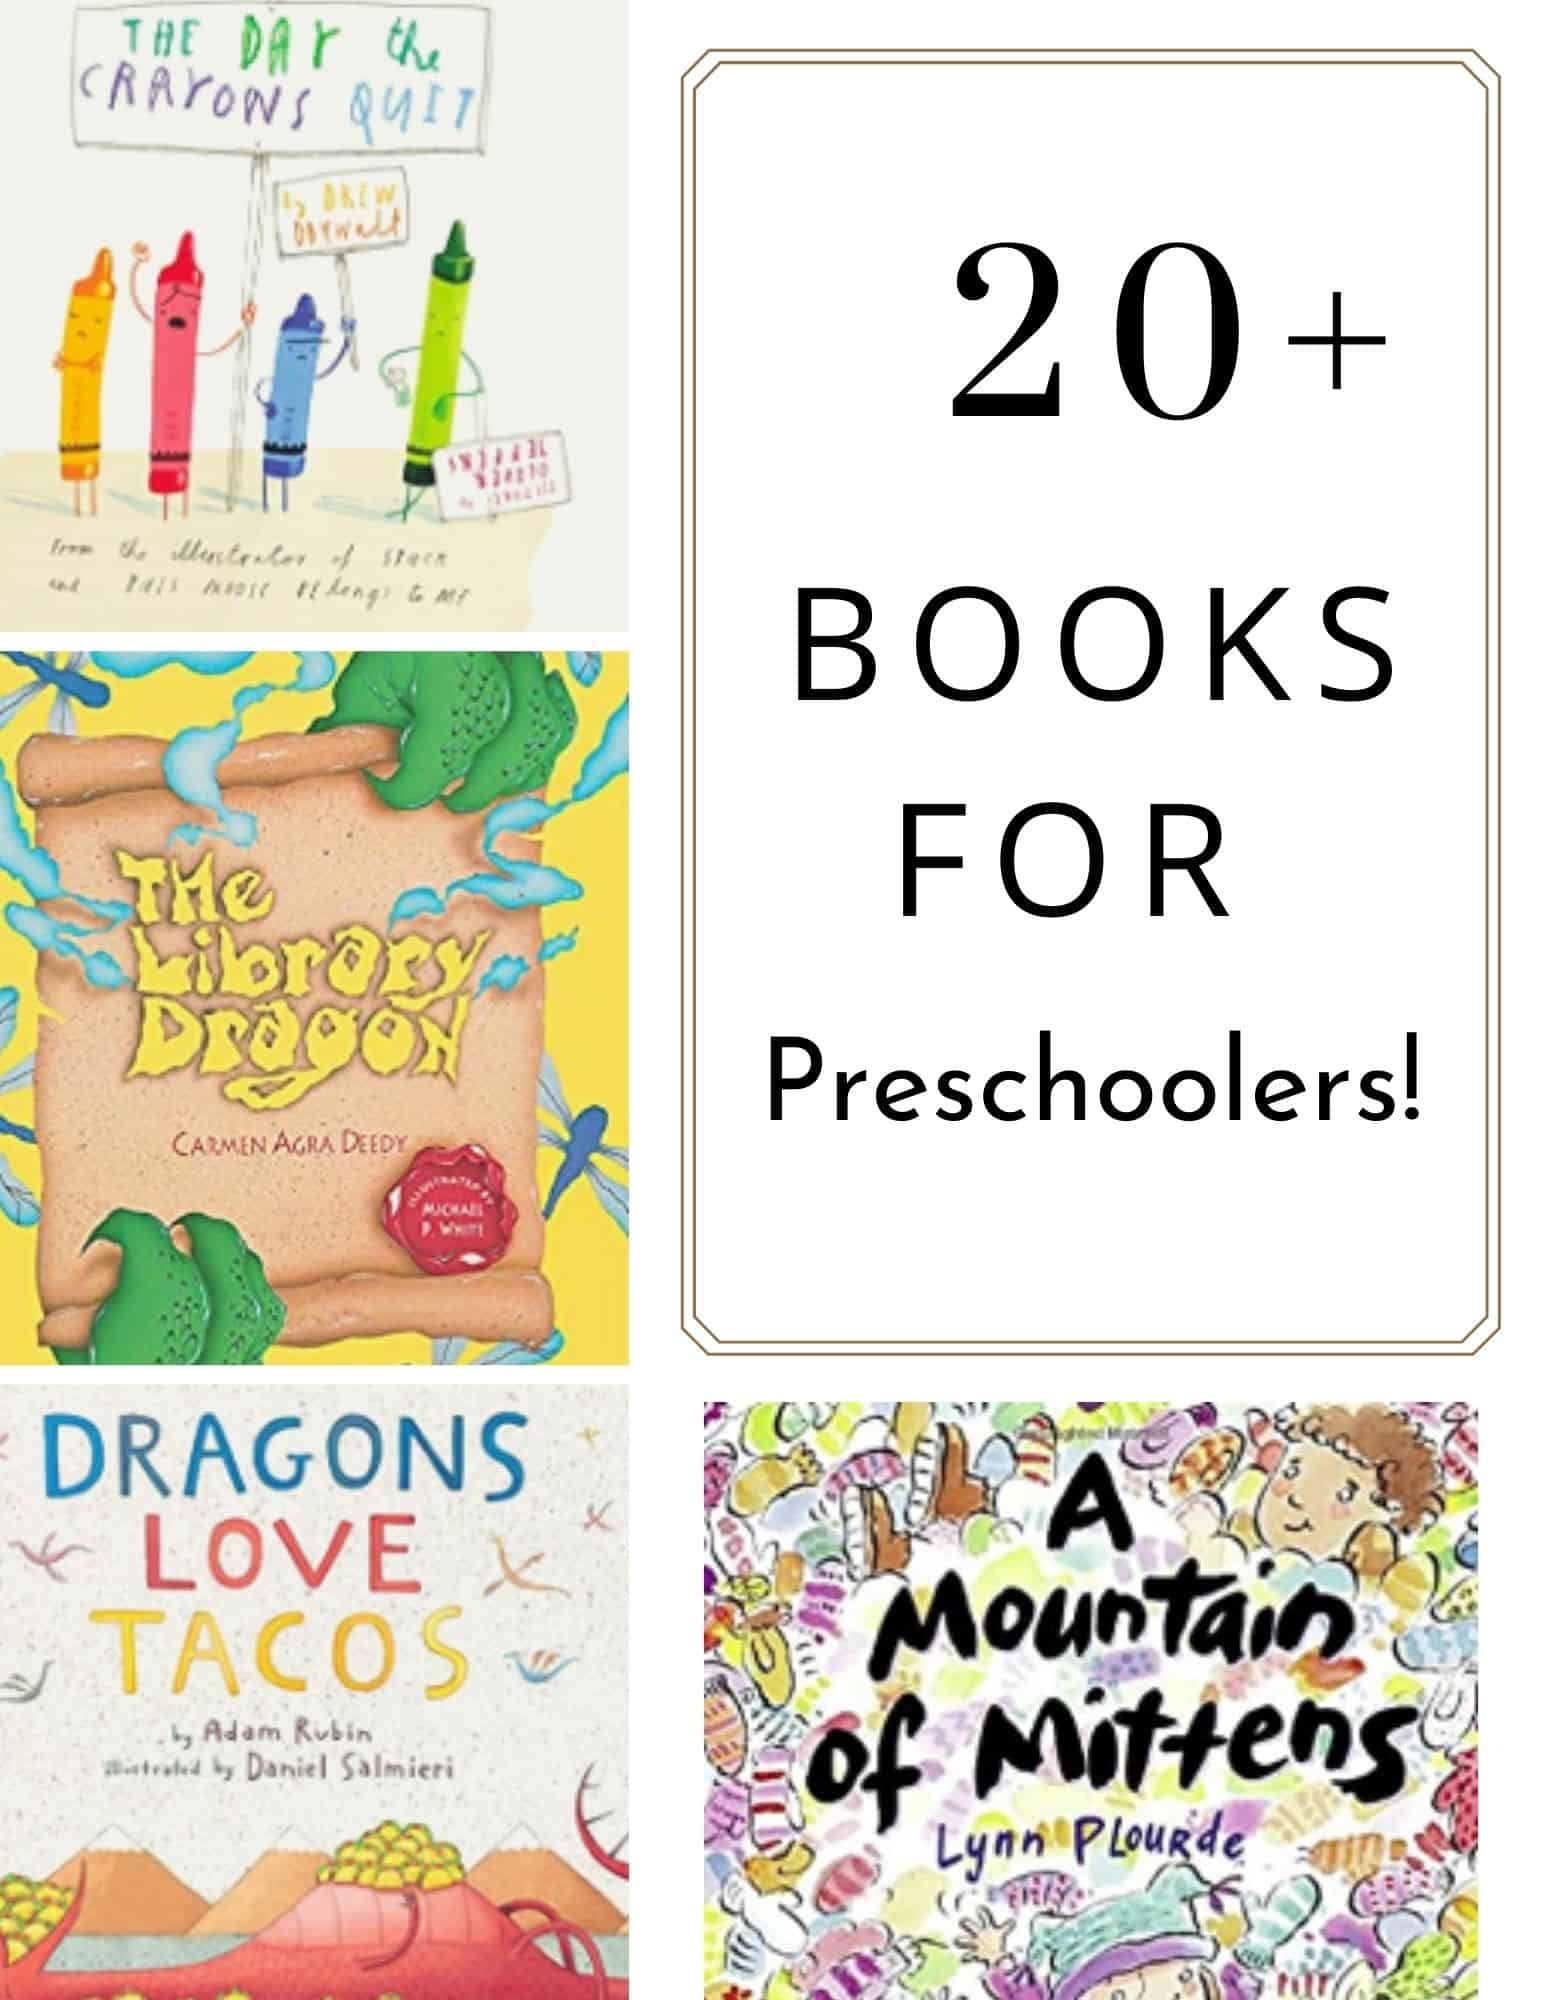 Buying books for preschoolers can be easy with these fun books for early readers. Includes over 20 books preschoolers are sure to love! Perfect for read-aloud or family reading time.